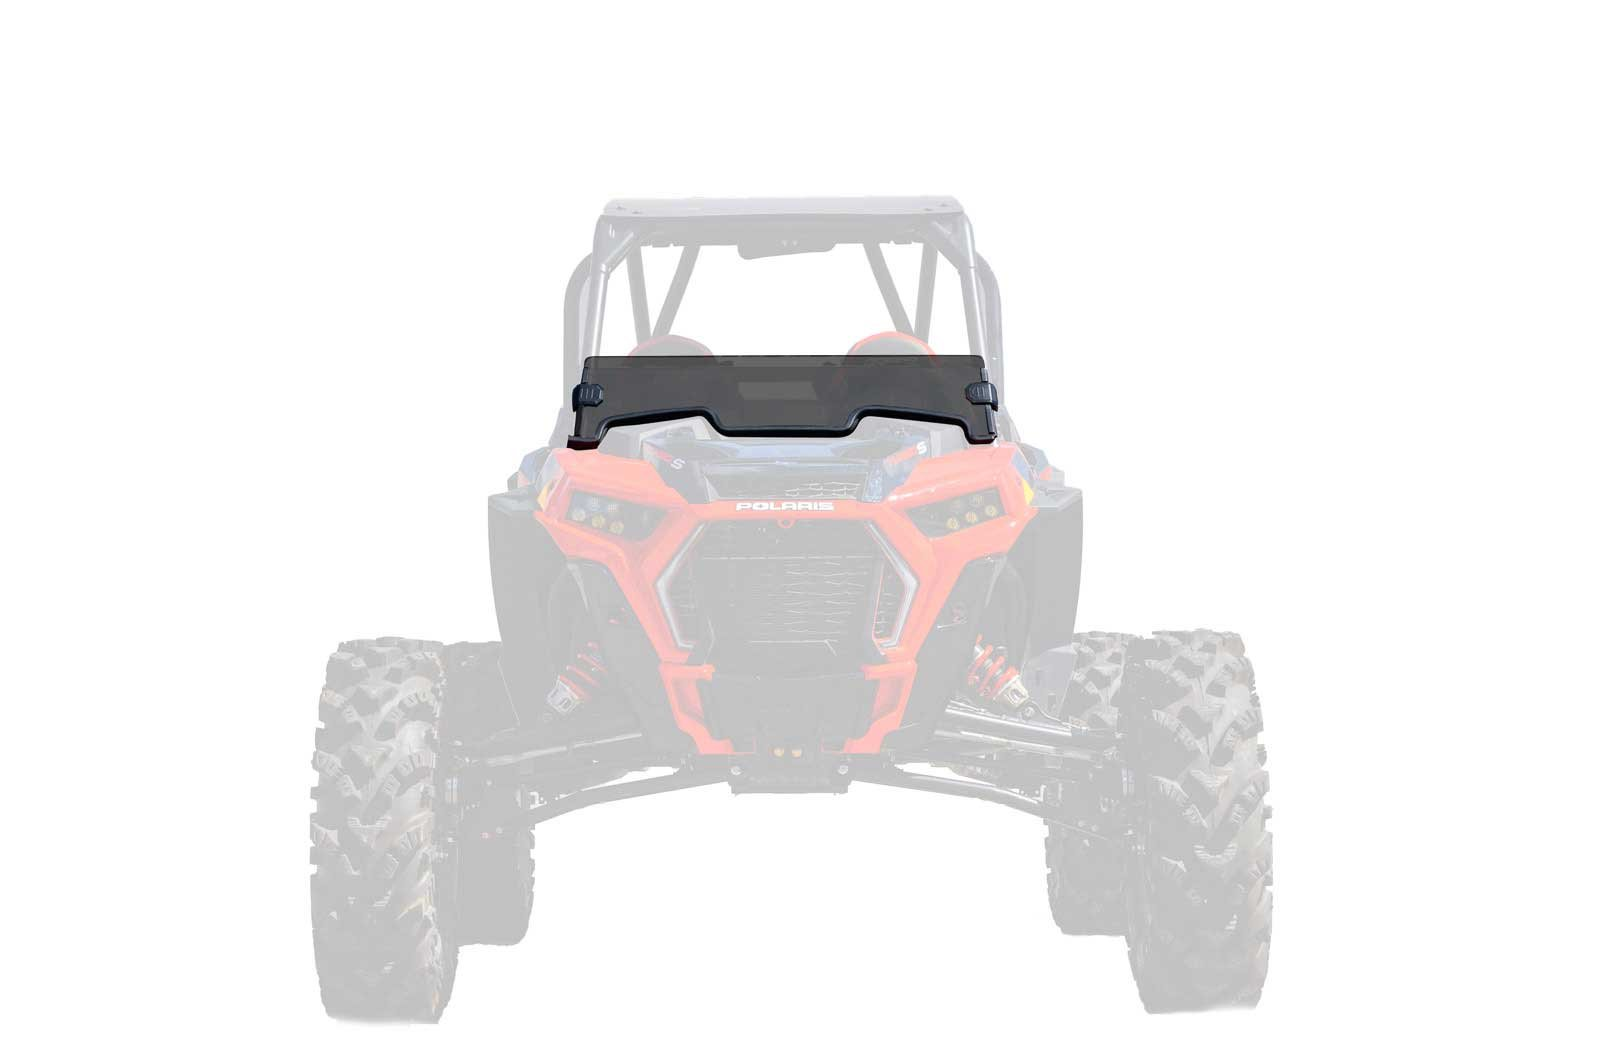 SuperATV Heavy Duty Dark Tint Non-Scratch Resistant Half Windshield for Polaris RZR XP Turbo/XP 4 Turbo (2019+) - 250X Stronger Than Glass - Installs in 5 Minutes!